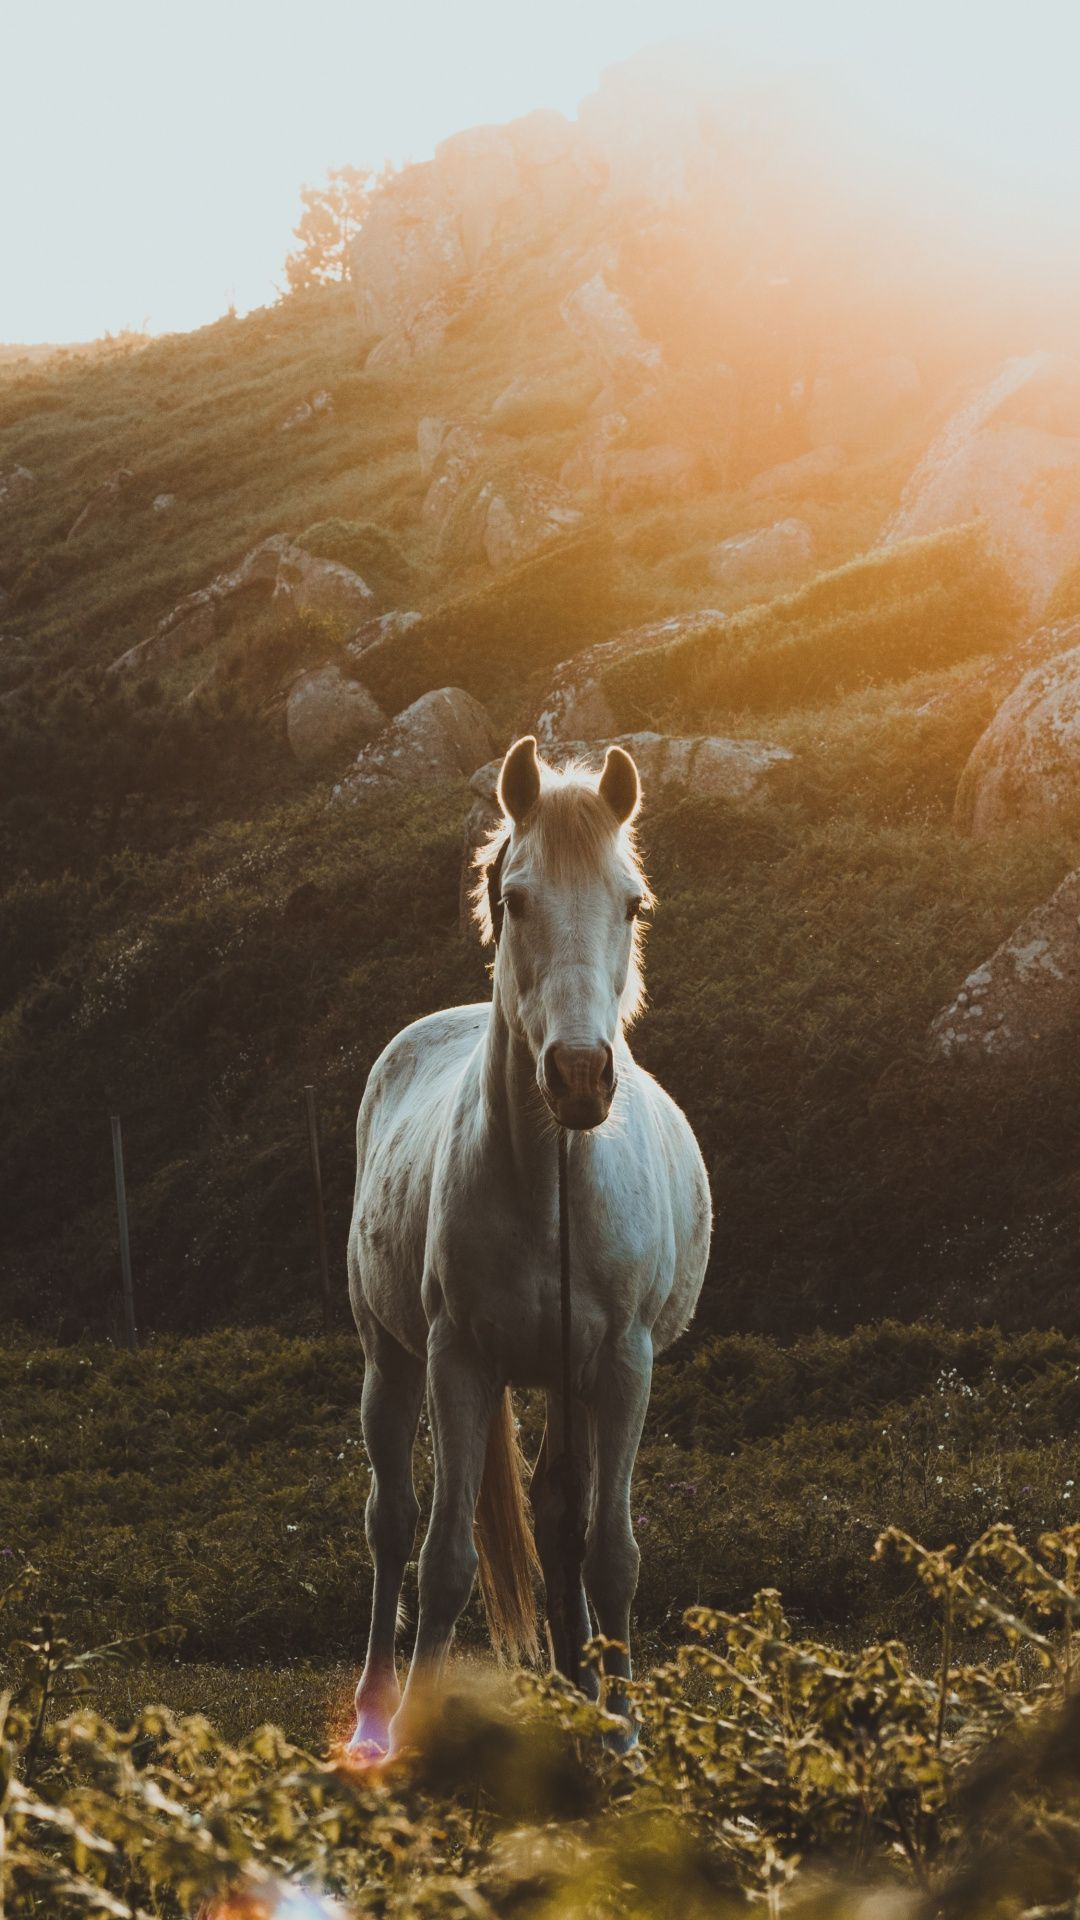 White Horse Grass Landscape Outdoor 1080x1920 Wallpaper Horse Wallpaper Horses Cute Horses